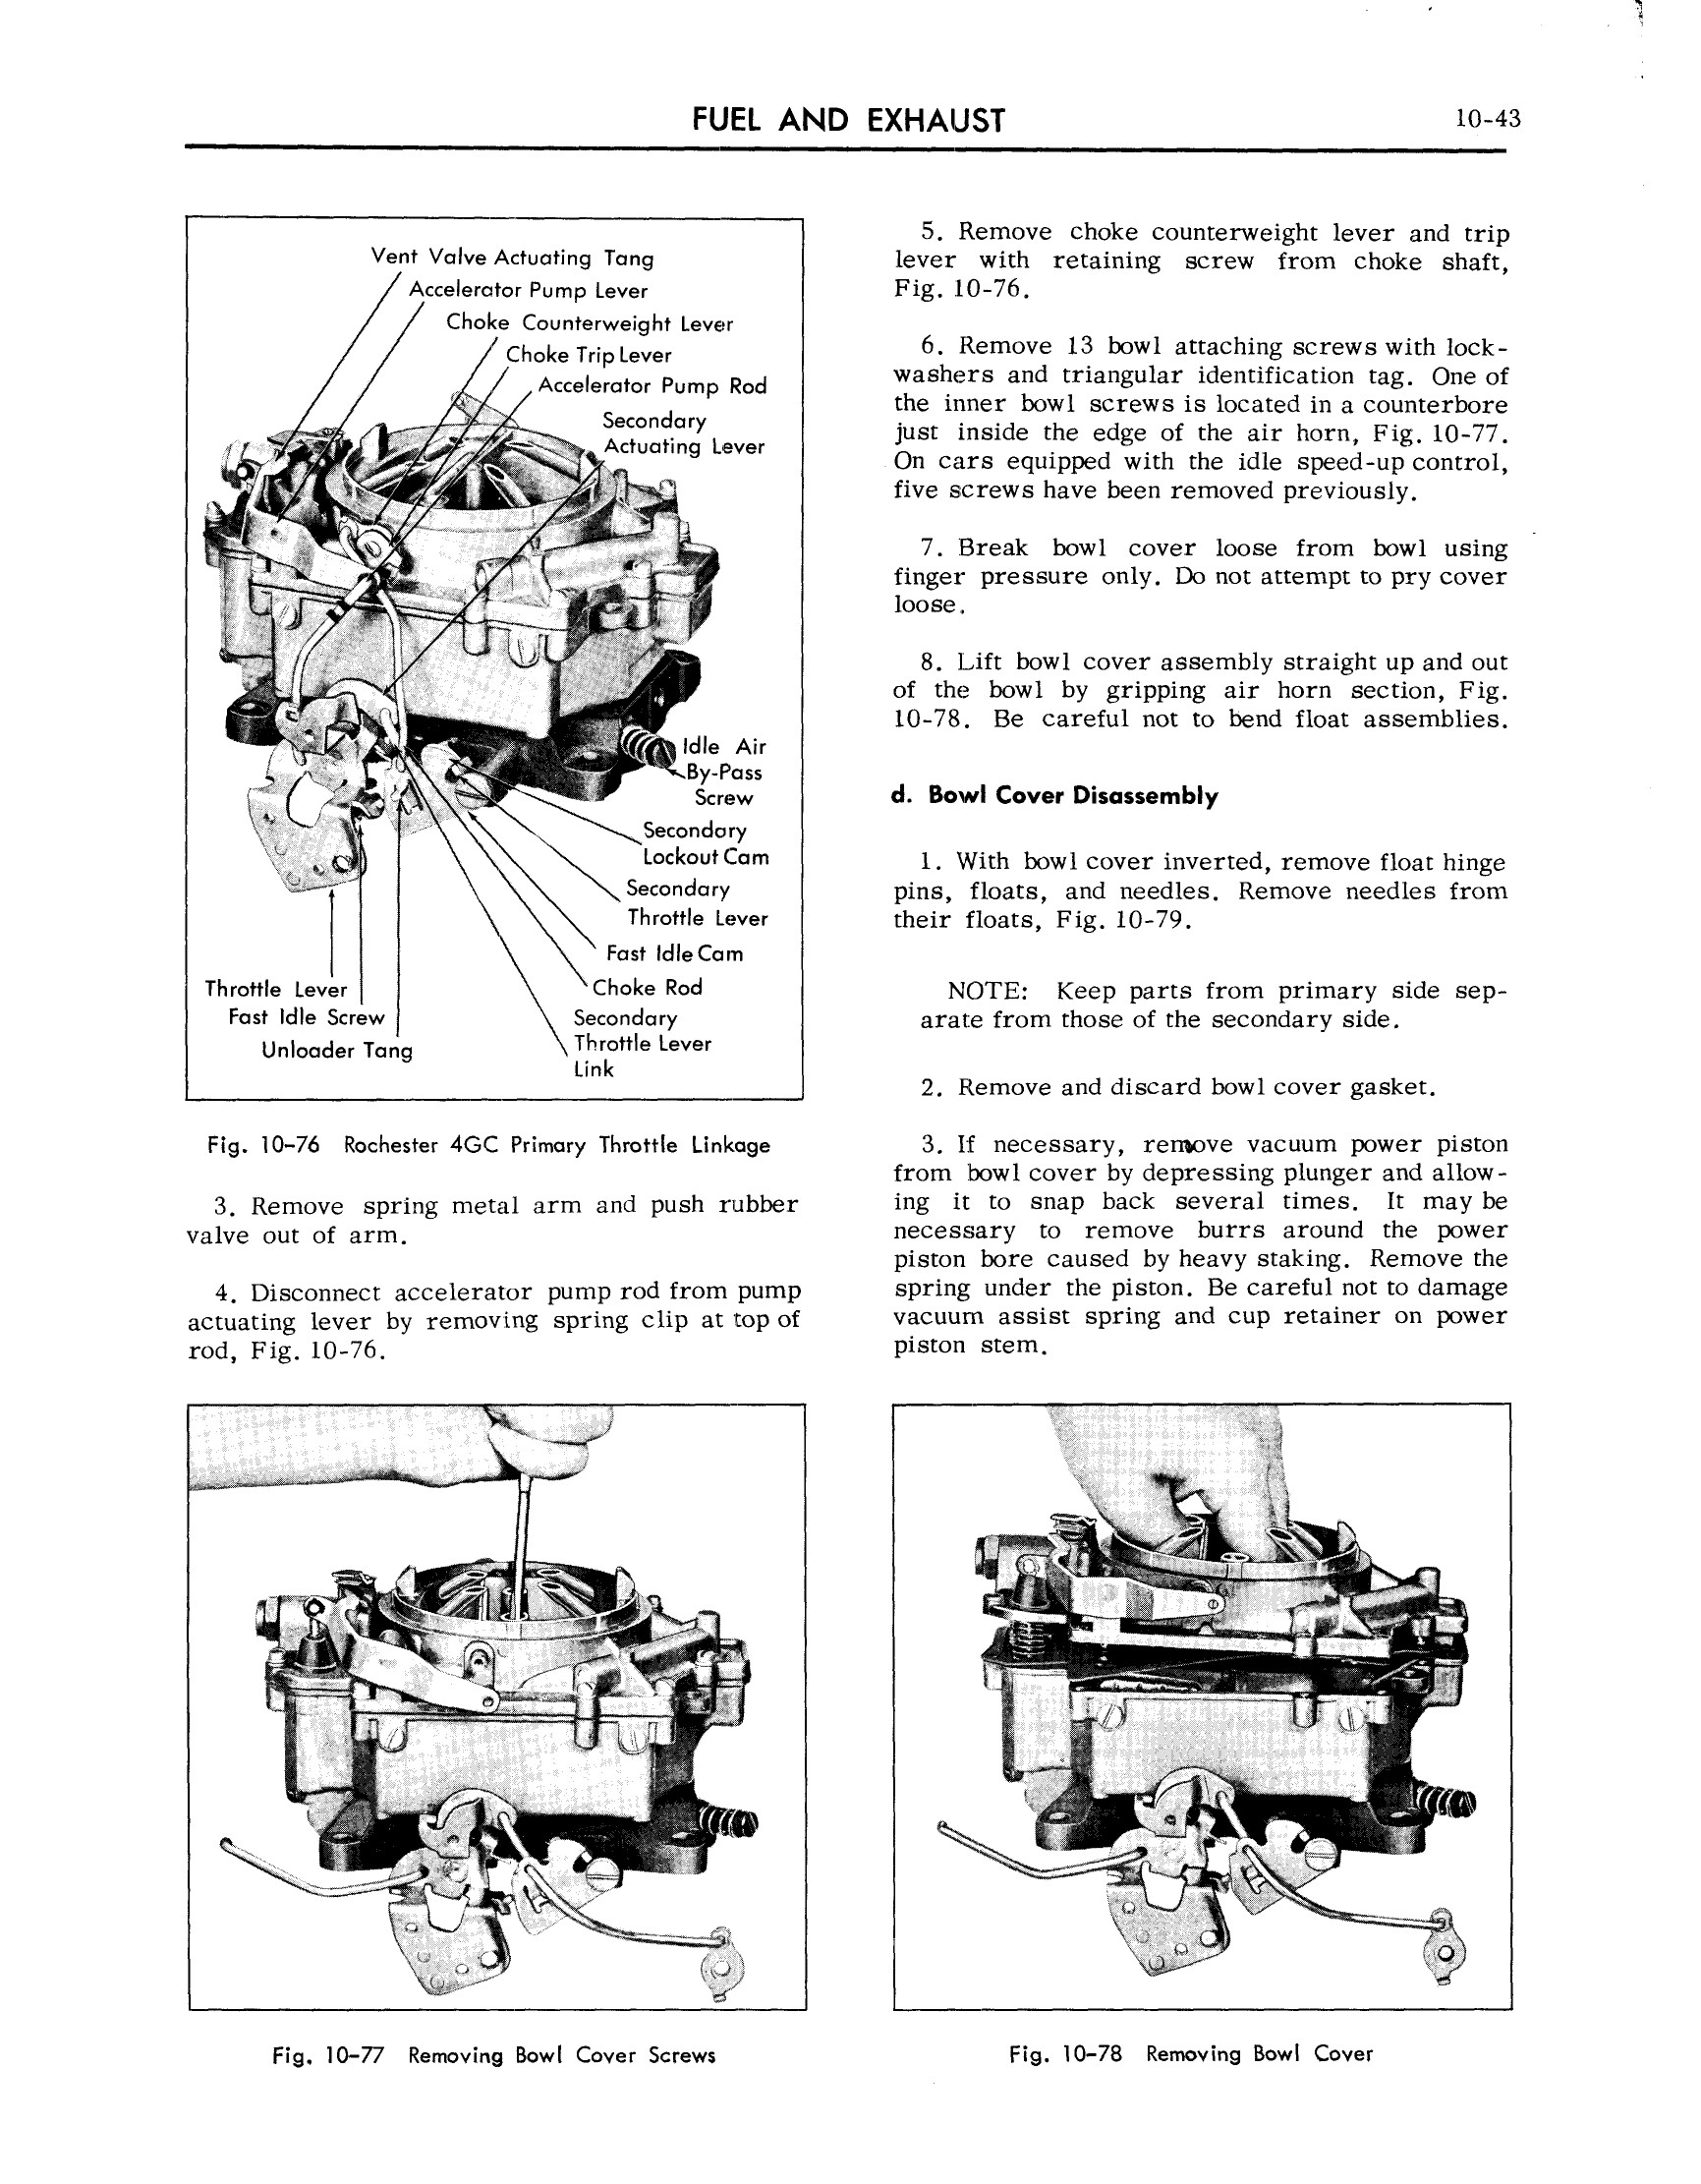 1959 Cadillac Shop Manual- Engine Fuel and Exhaust Page 43